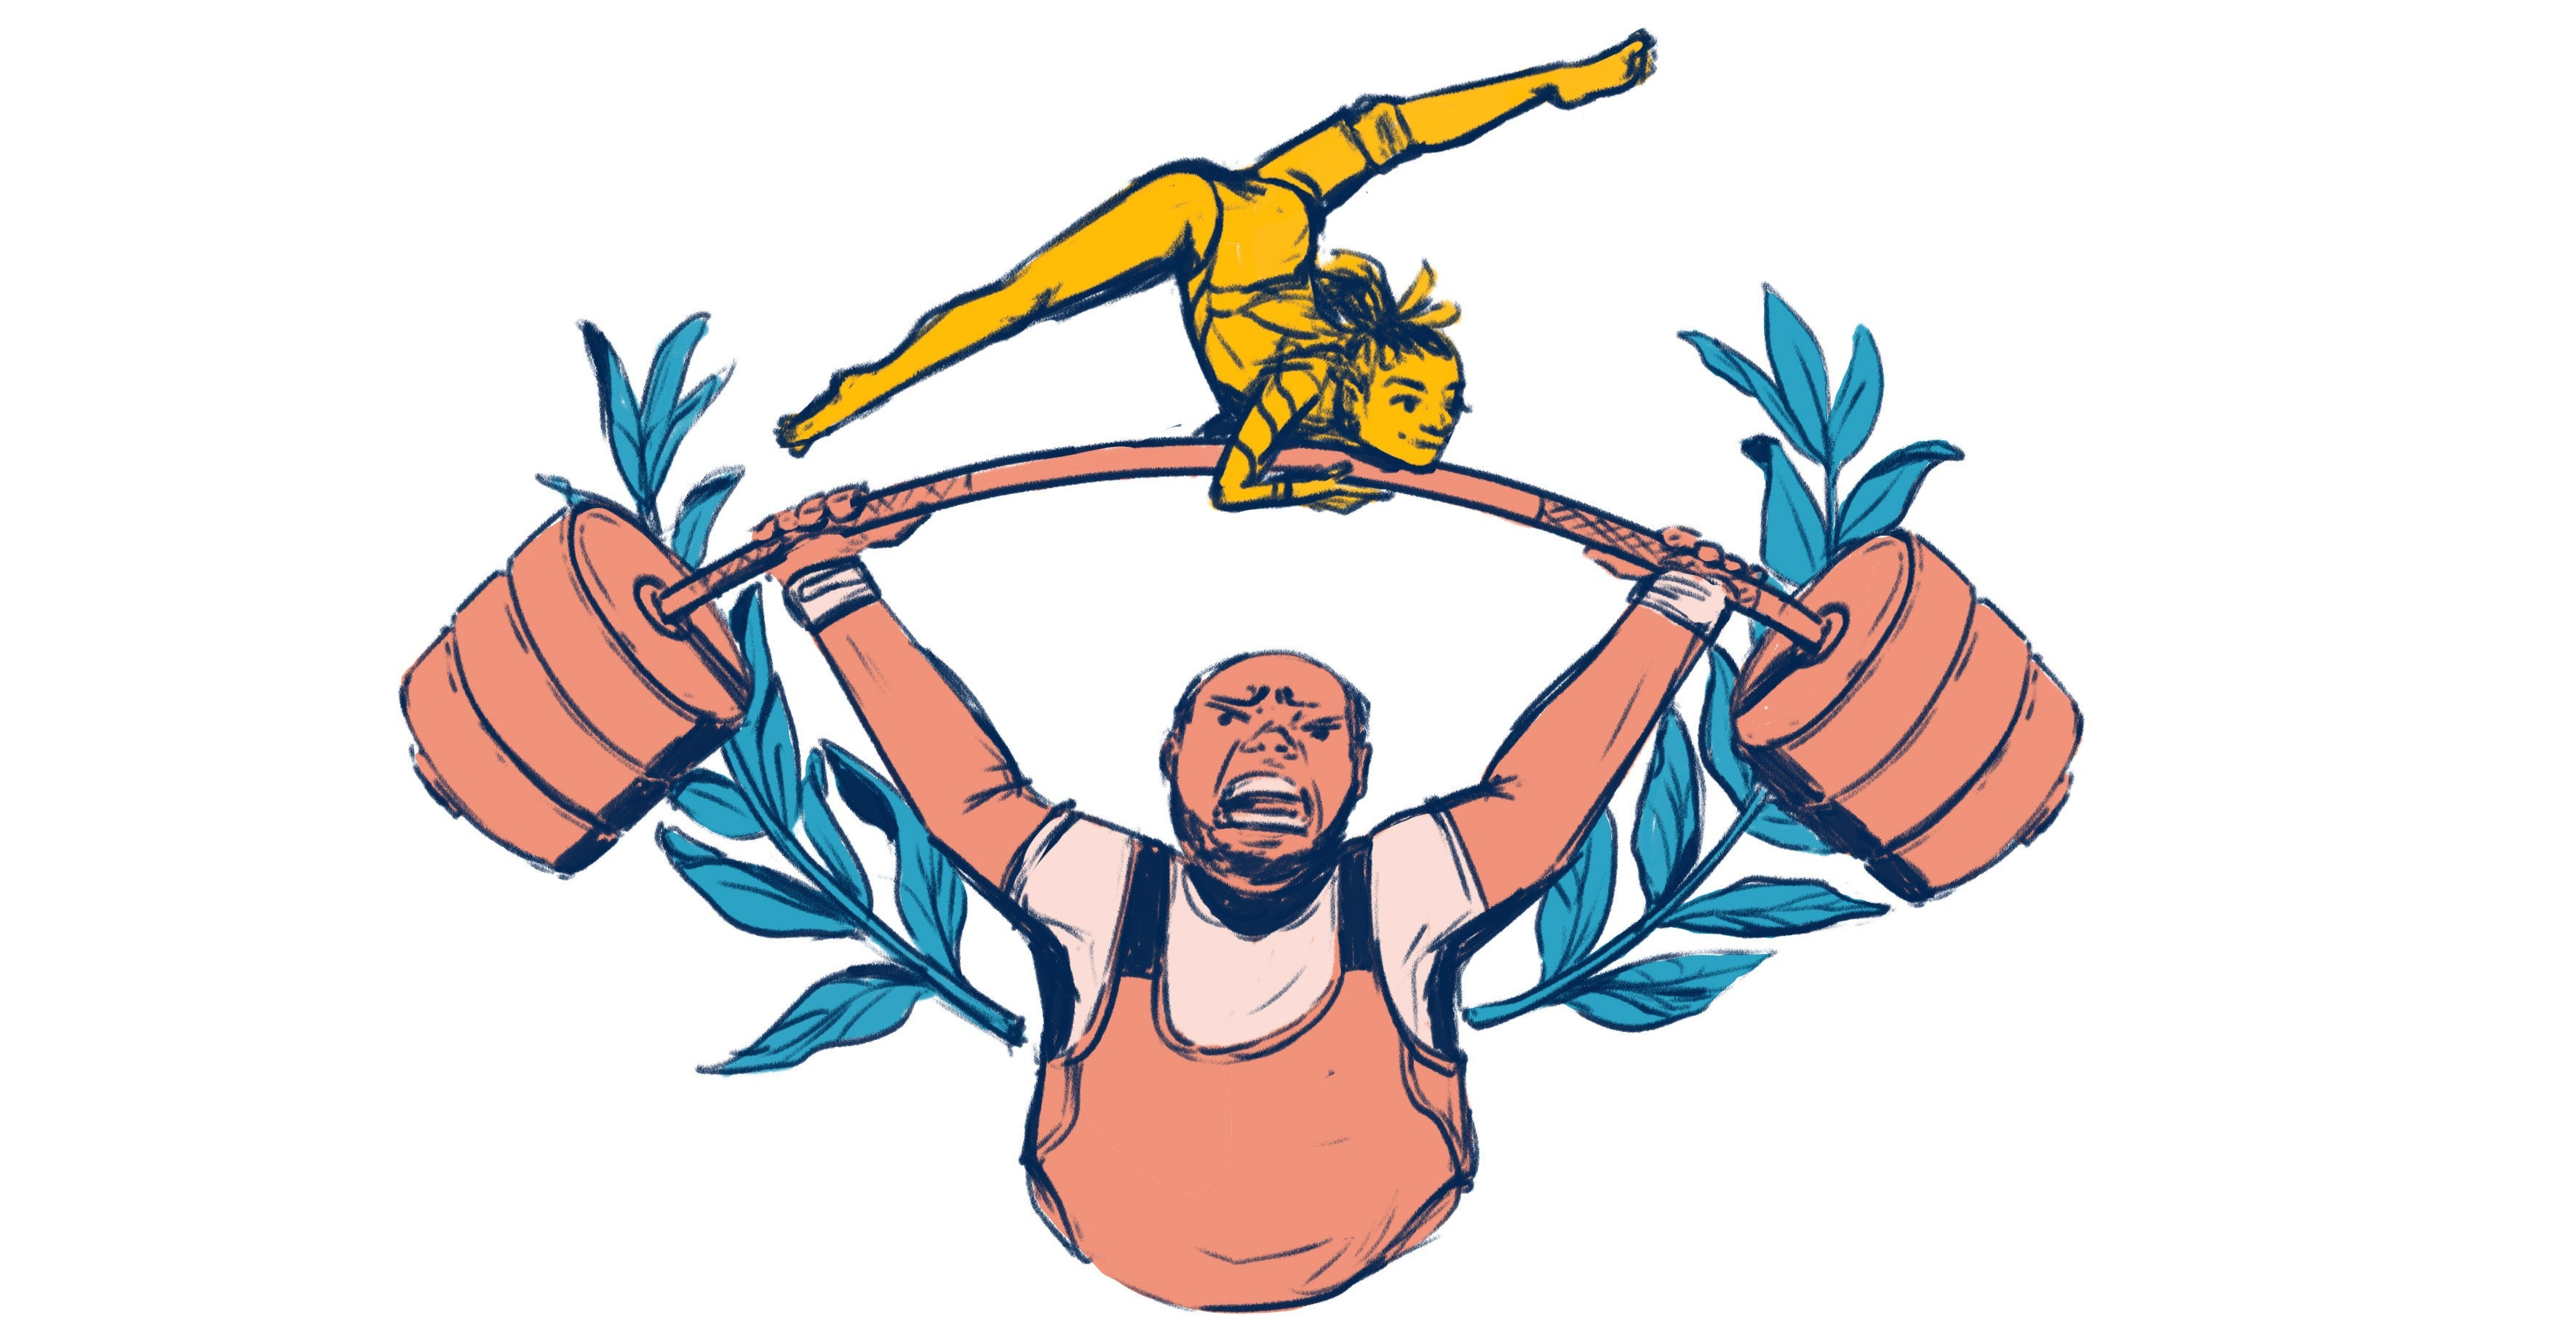 A man lifts a barbell with a woman doing gymnastics on top.